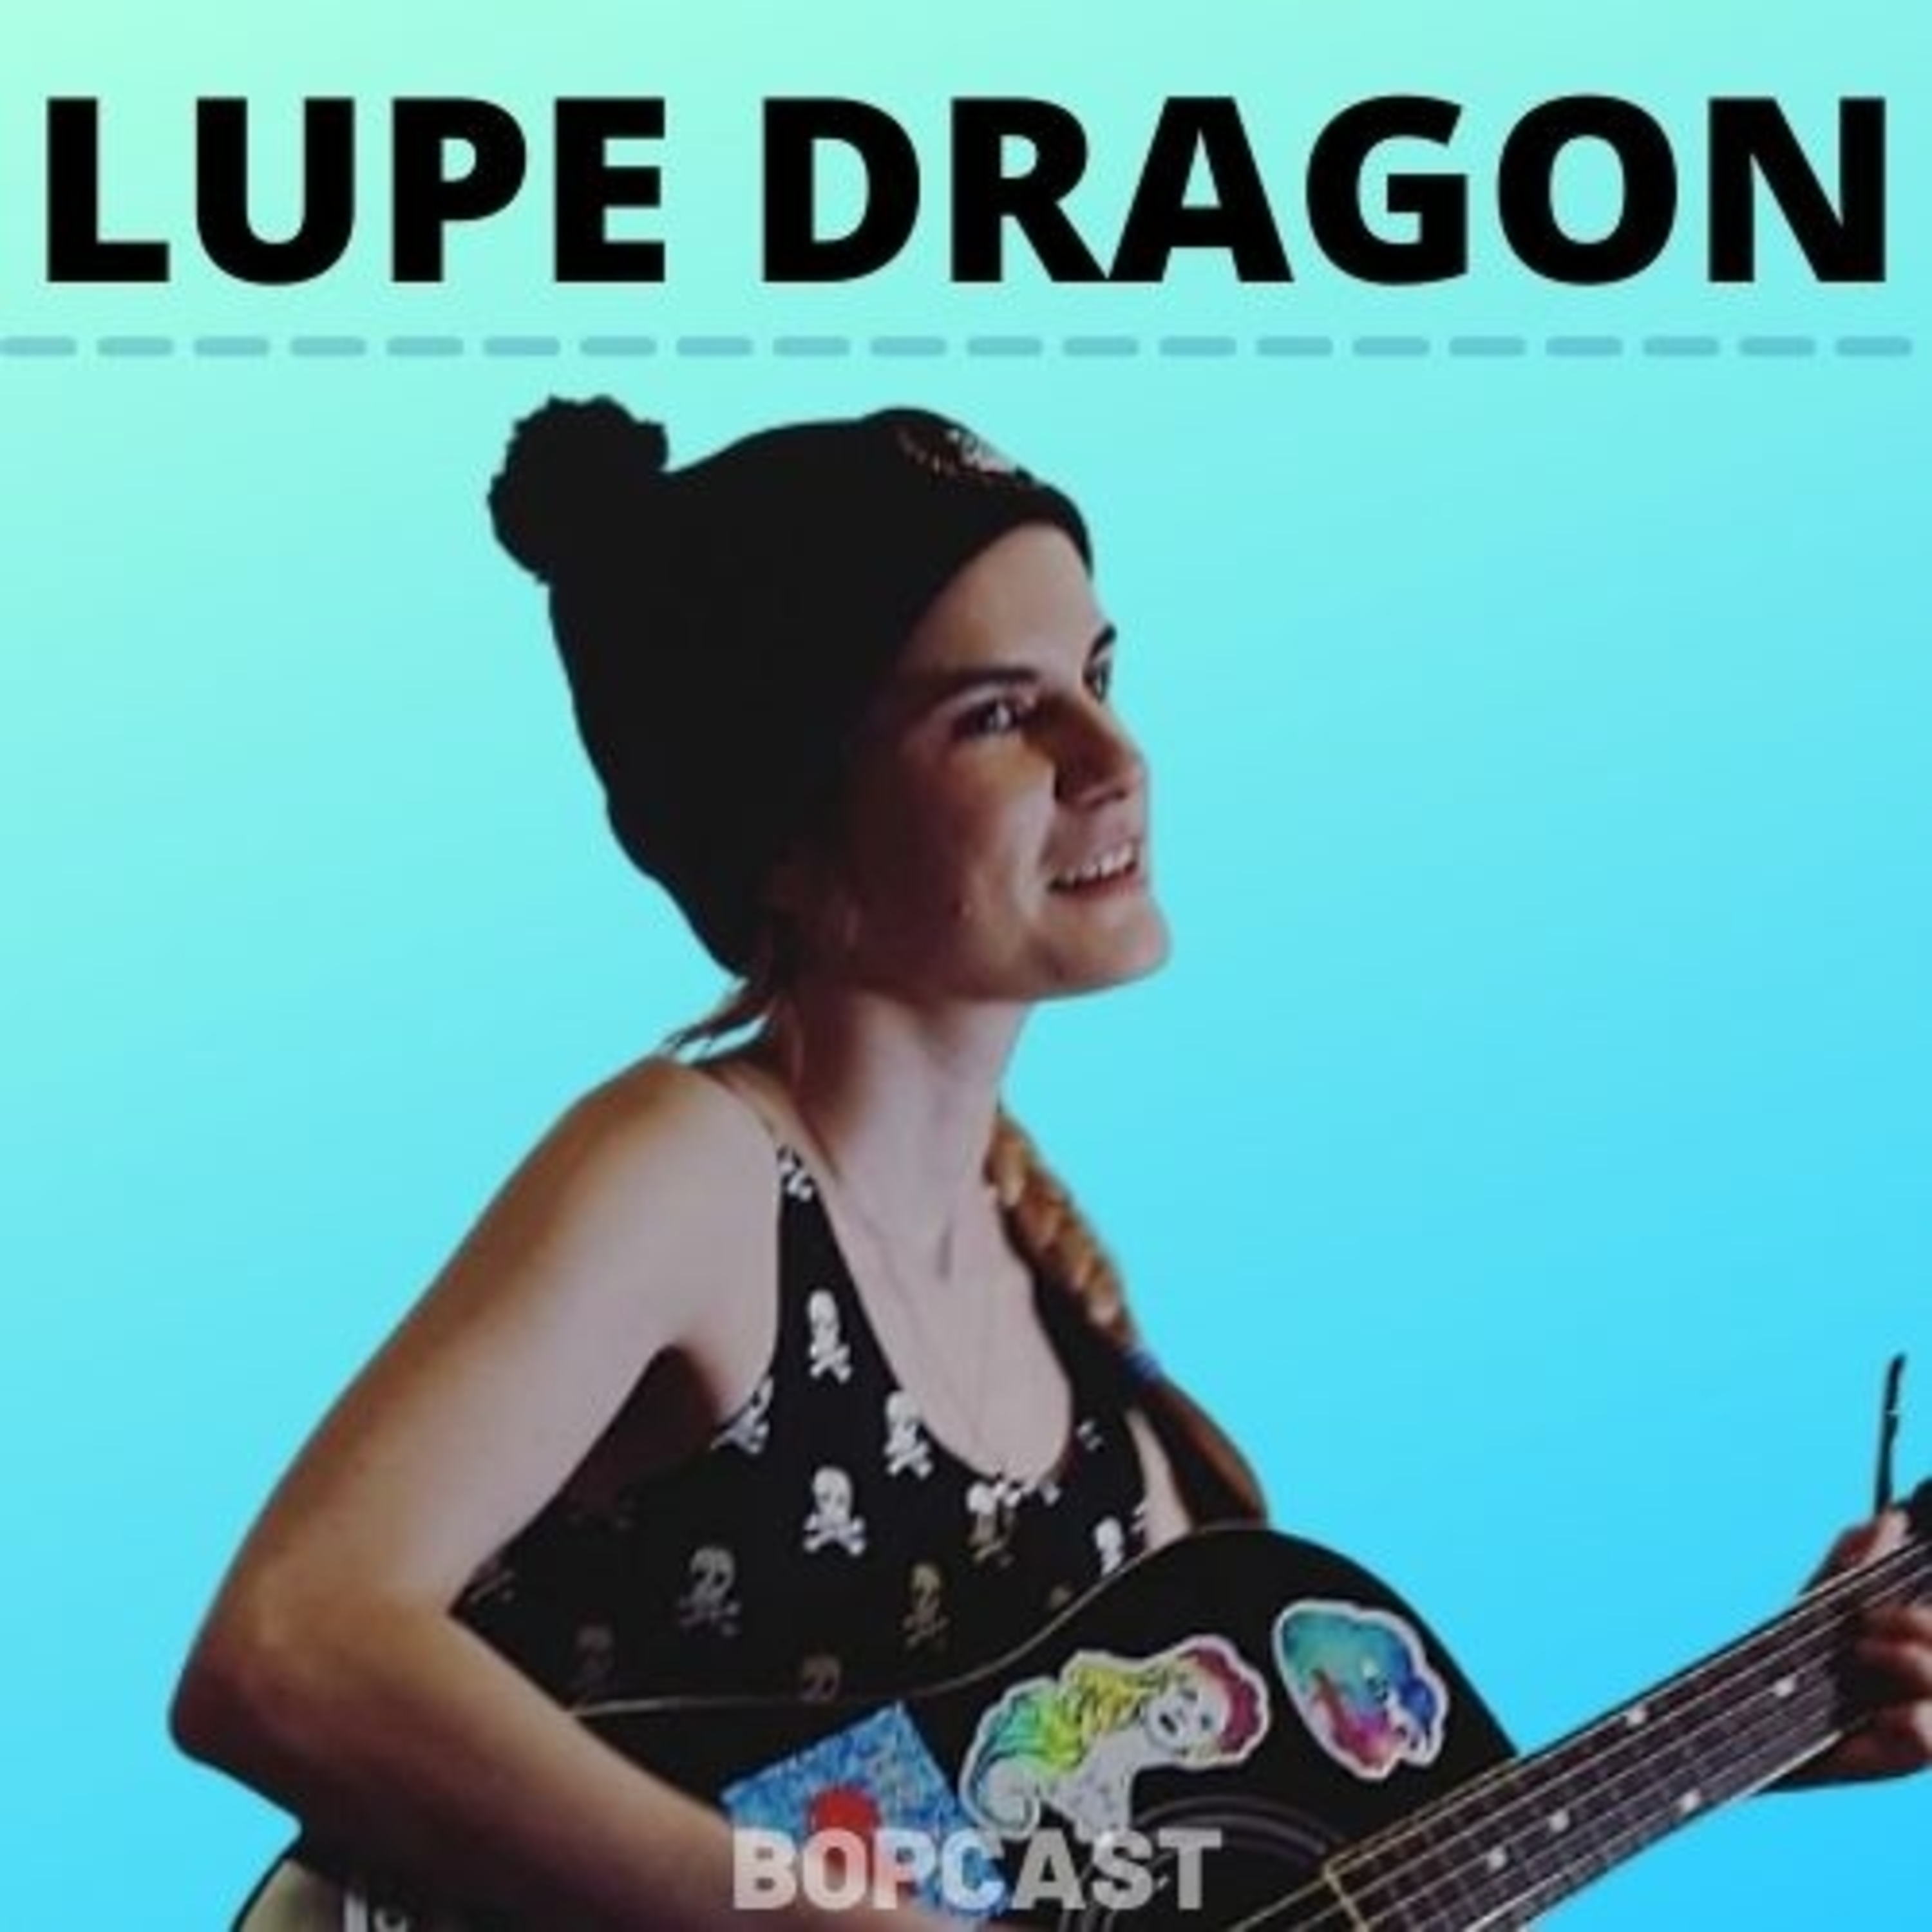 A Rare Live Performance on BopCast - How to Bend Genres, Handle Opinions of Your Music and Get the Room Jumpin' with Lupe Dragon